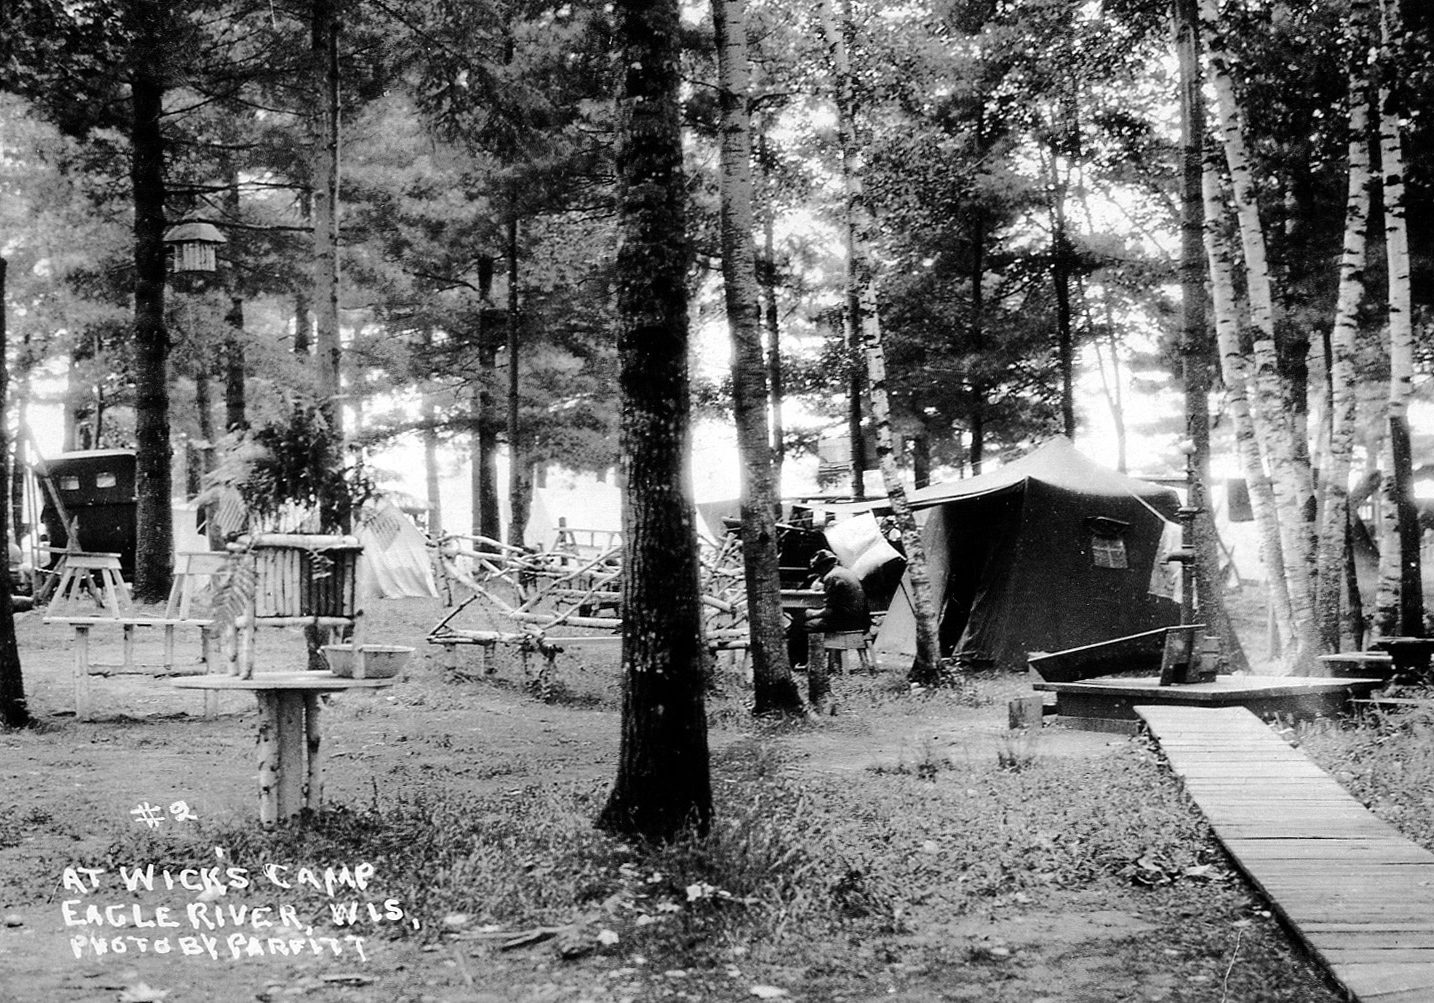 Wick's campground a